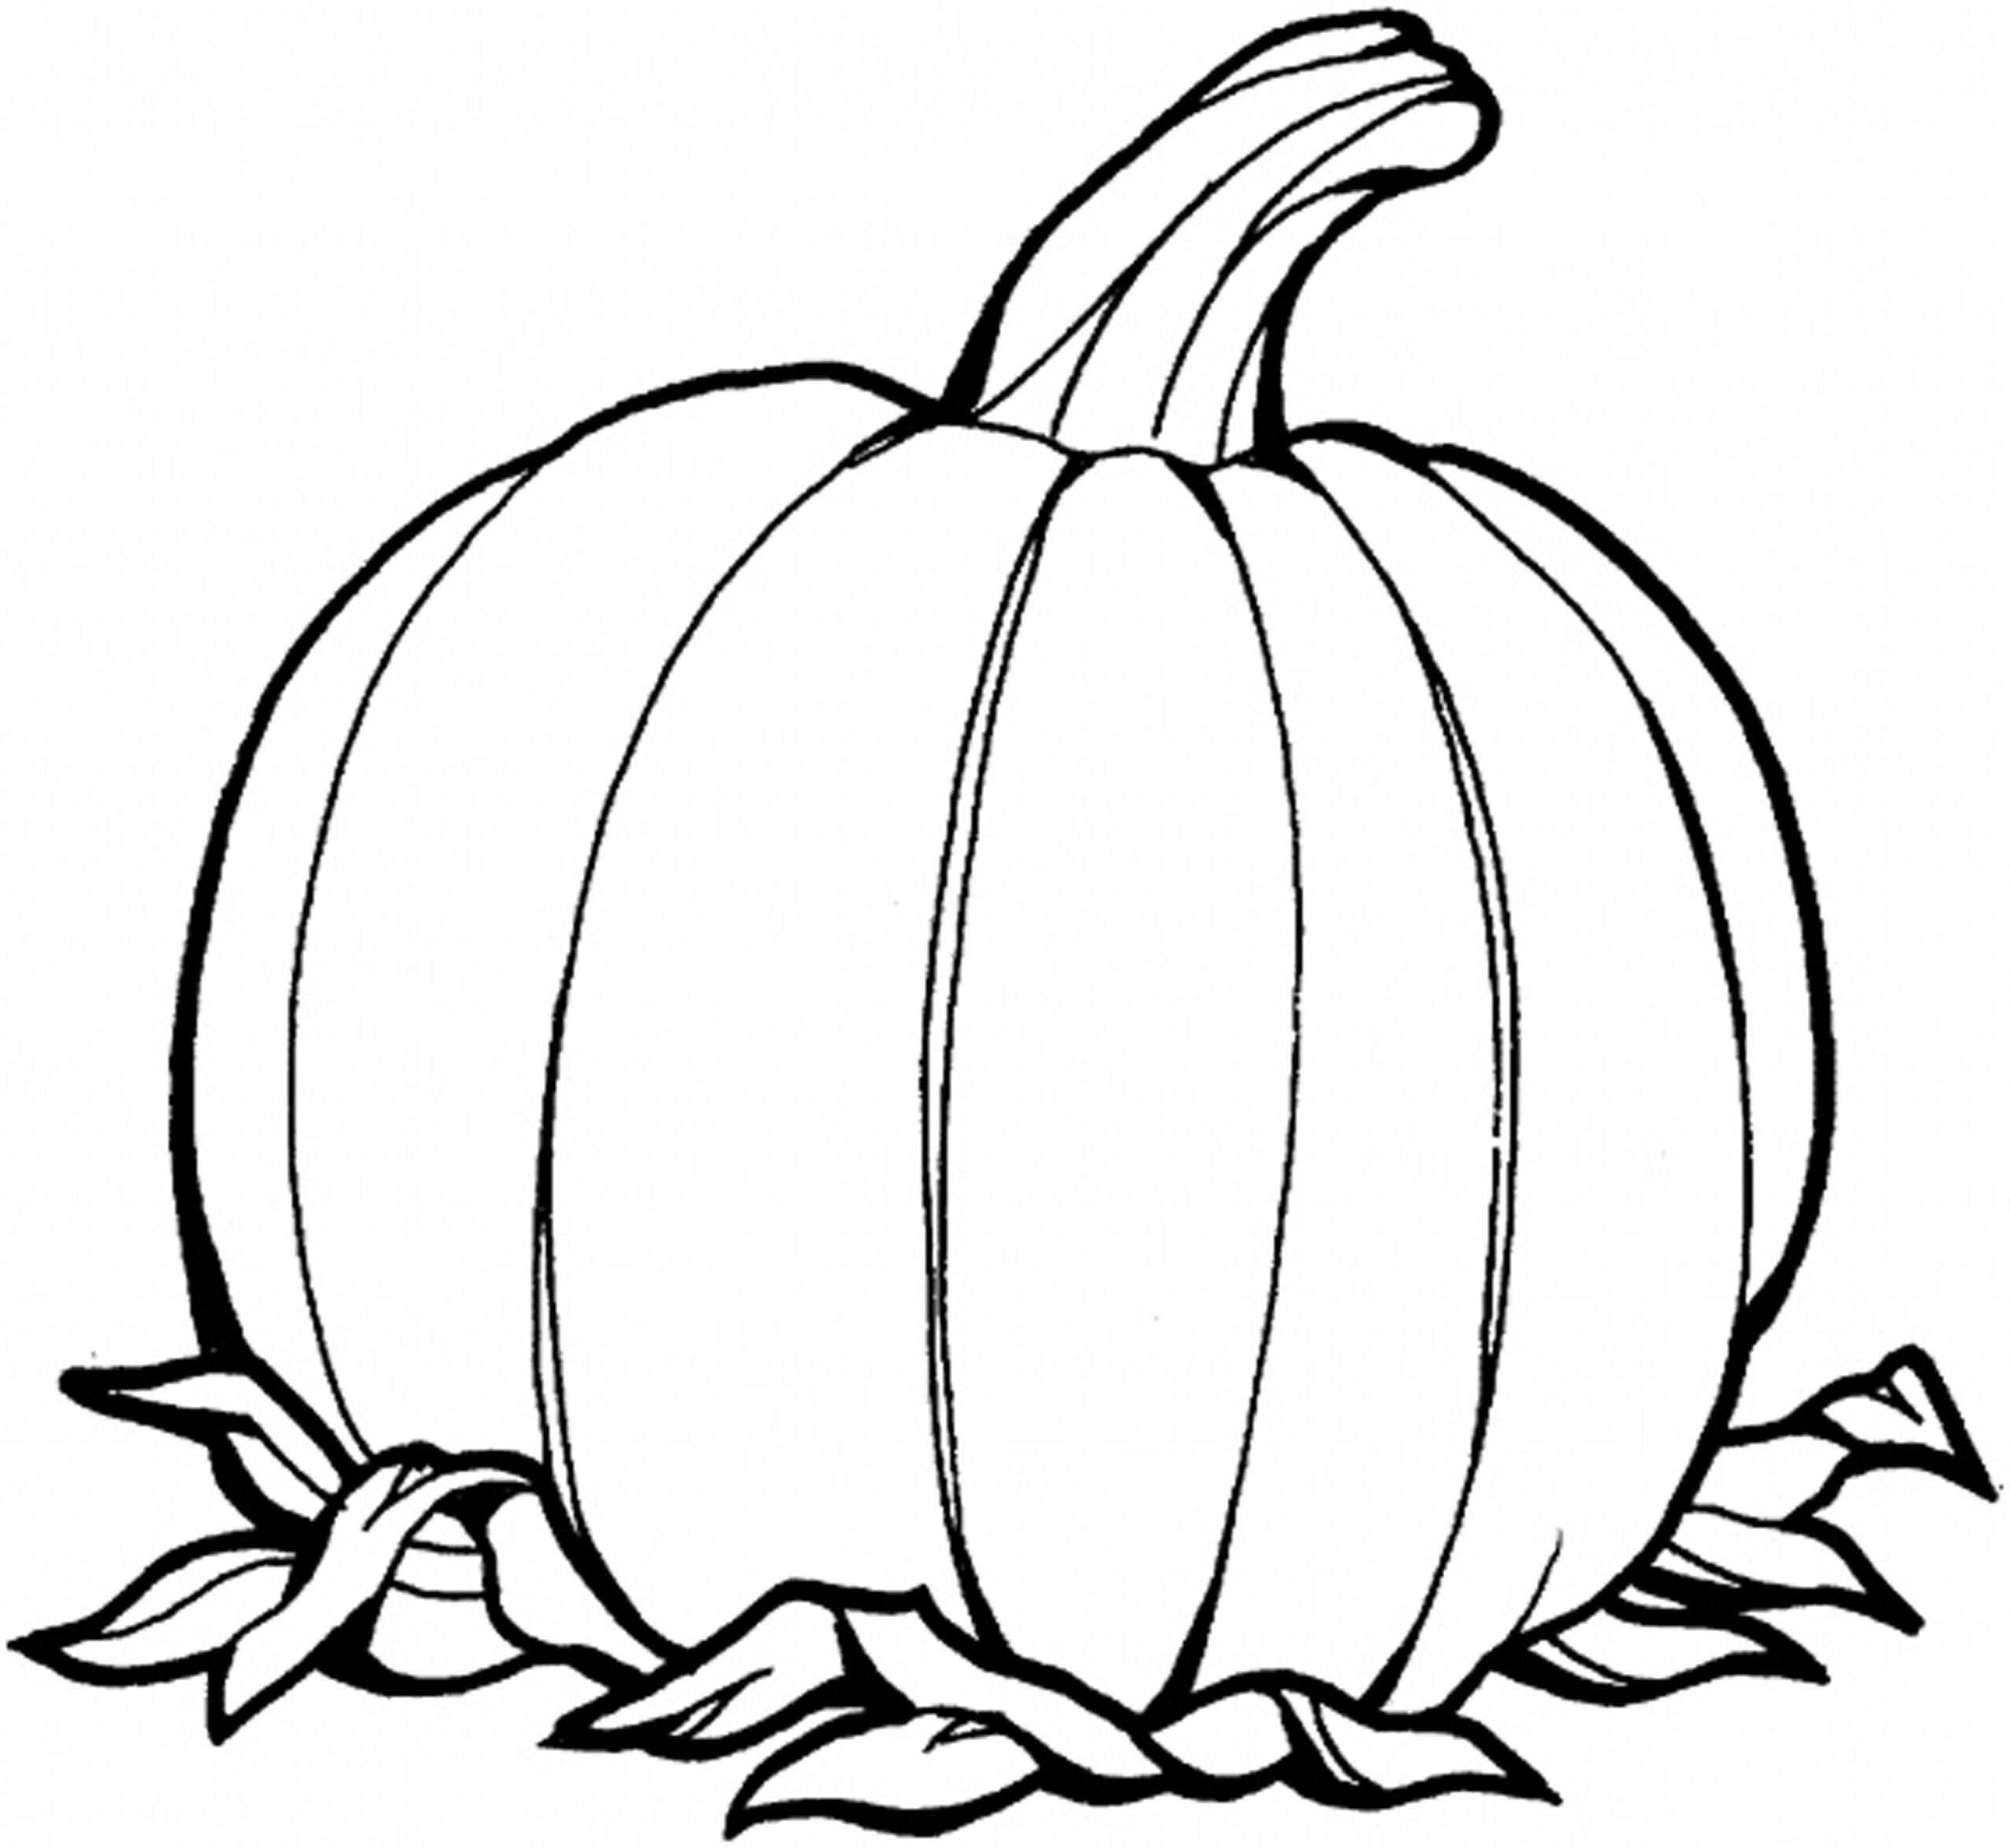 Best ideas about Blank Pumpkin Coloring Sheets For Kids . Save or Pin Pumpkin Outline Printable Coloring Home Now.